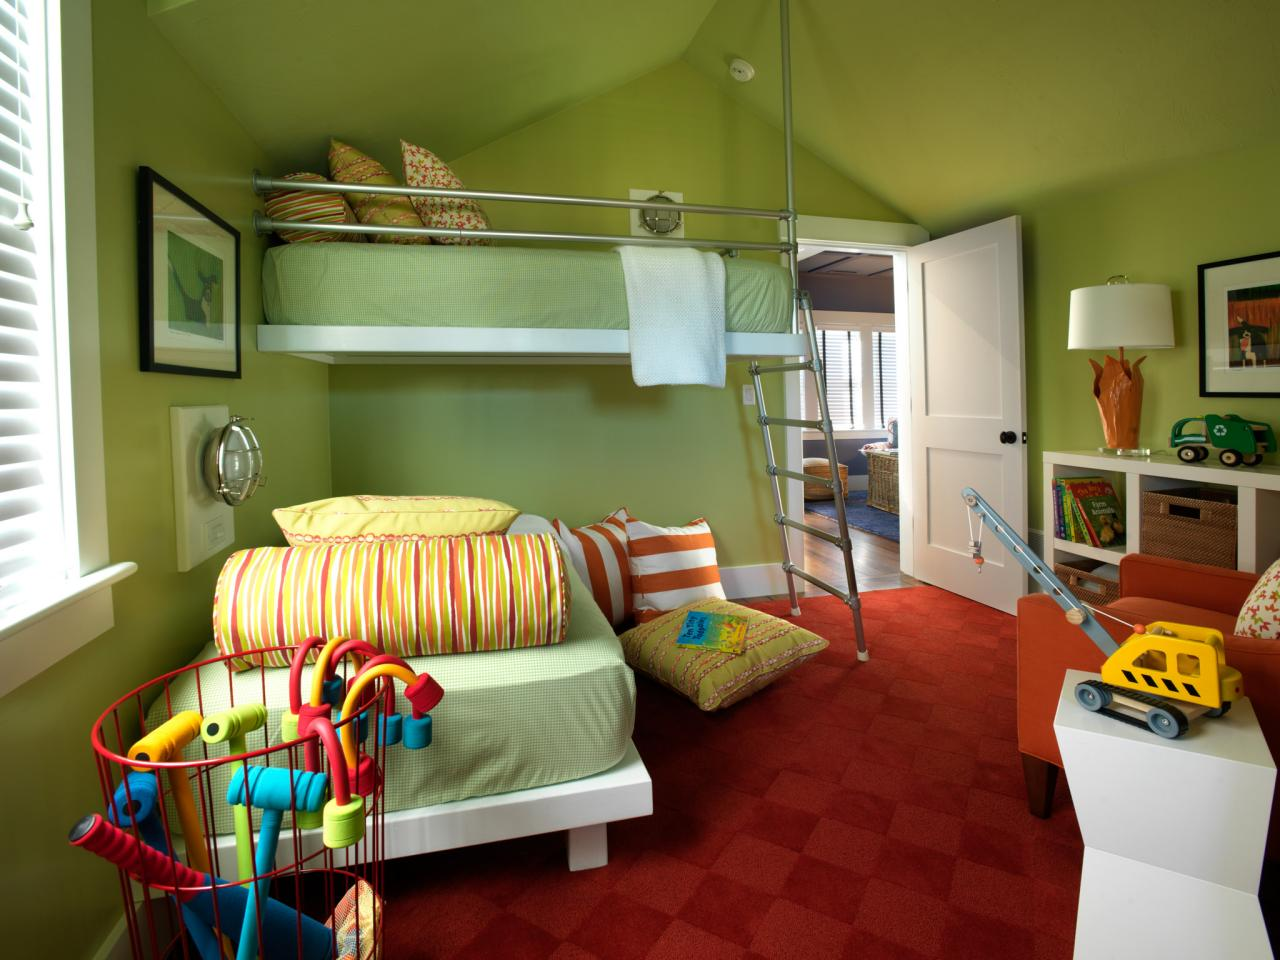 Boys Room Ideas boys room ideas and bedroom color schemes | hgtv